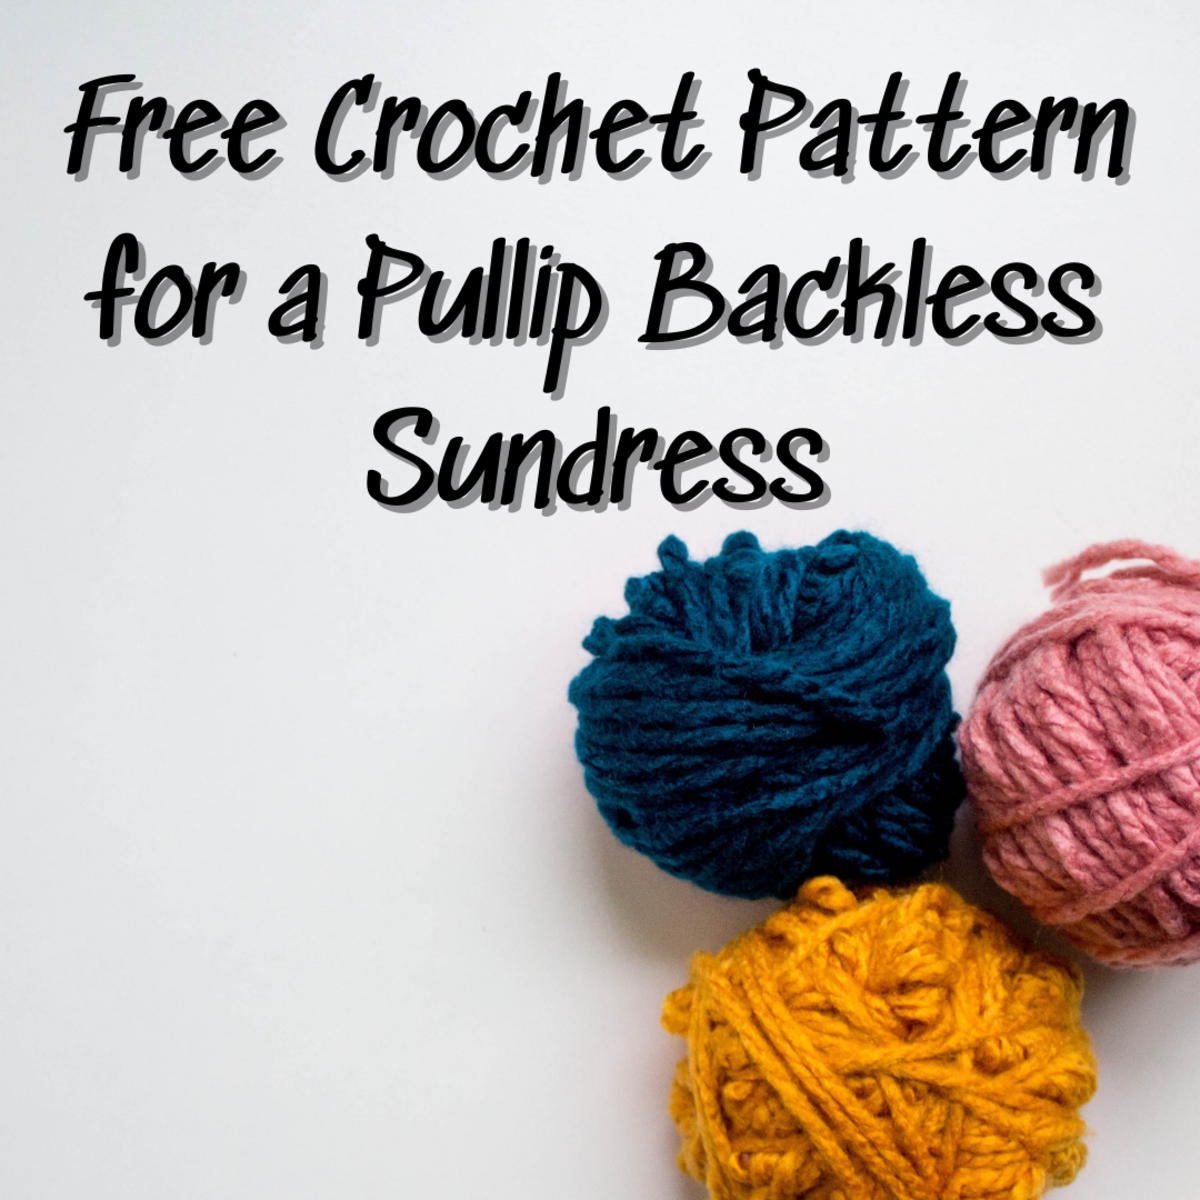 Learn how to crochet a pullip backless sundress for a Barbie doll with the easy, step-by-step guide